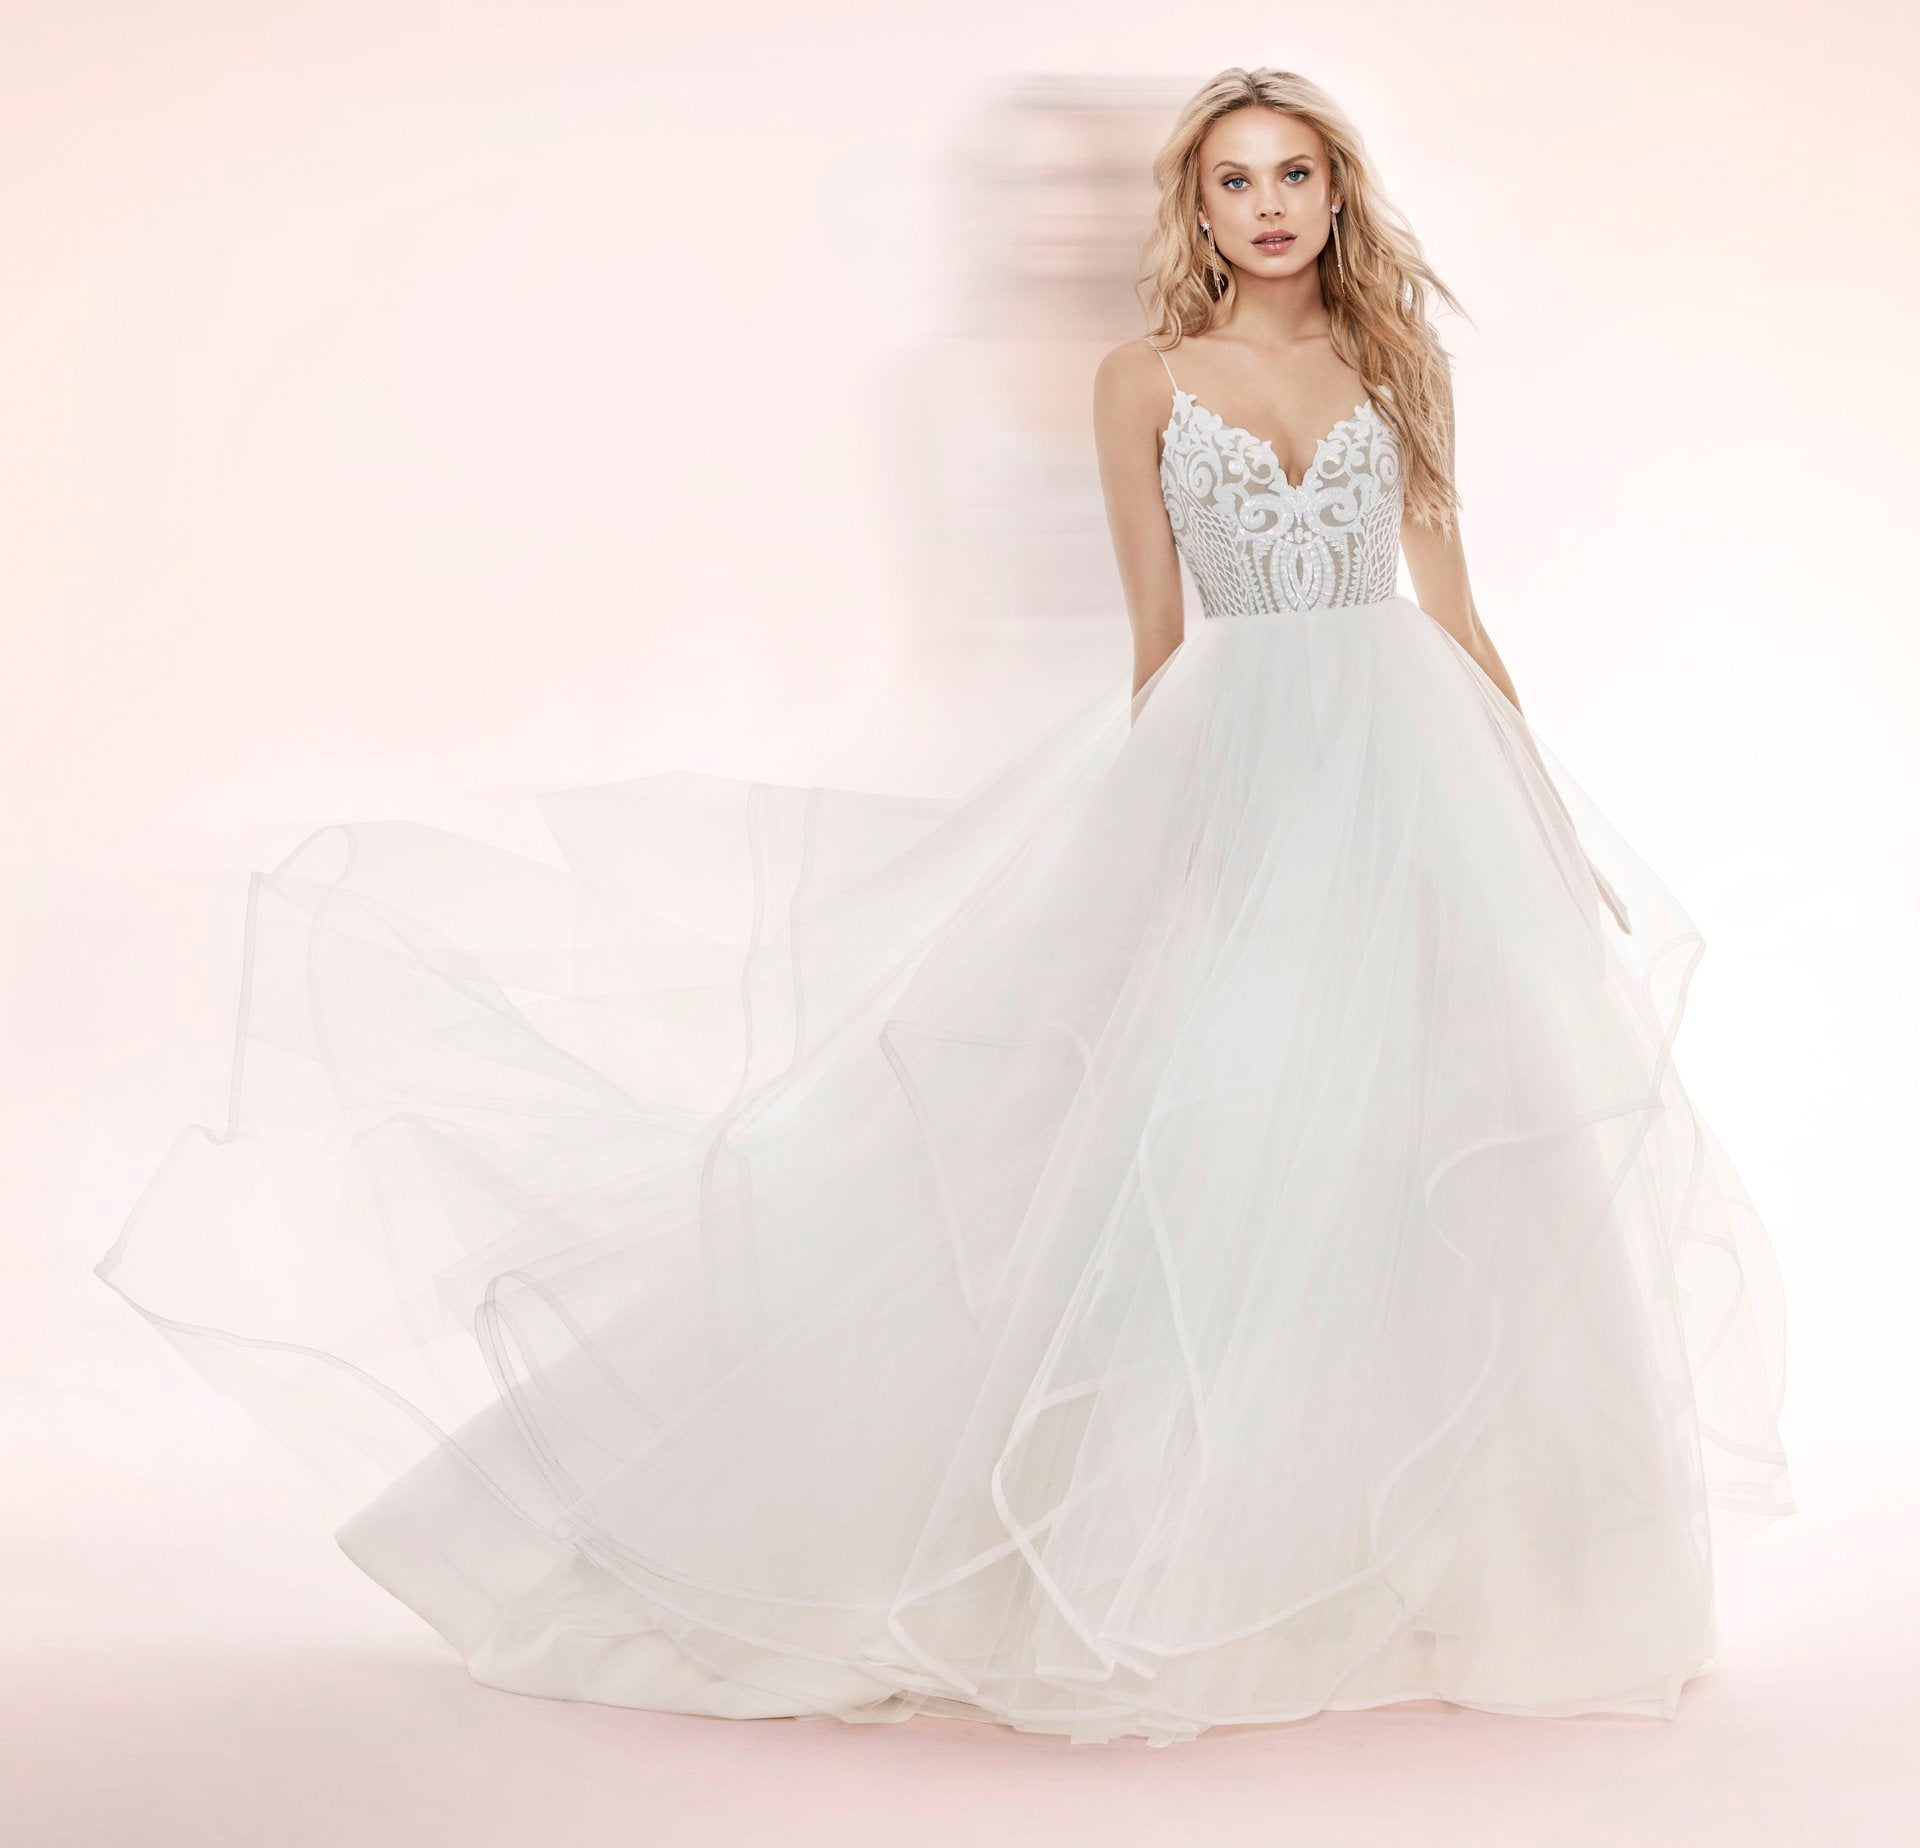 Wedding Dresses in Scottsdale